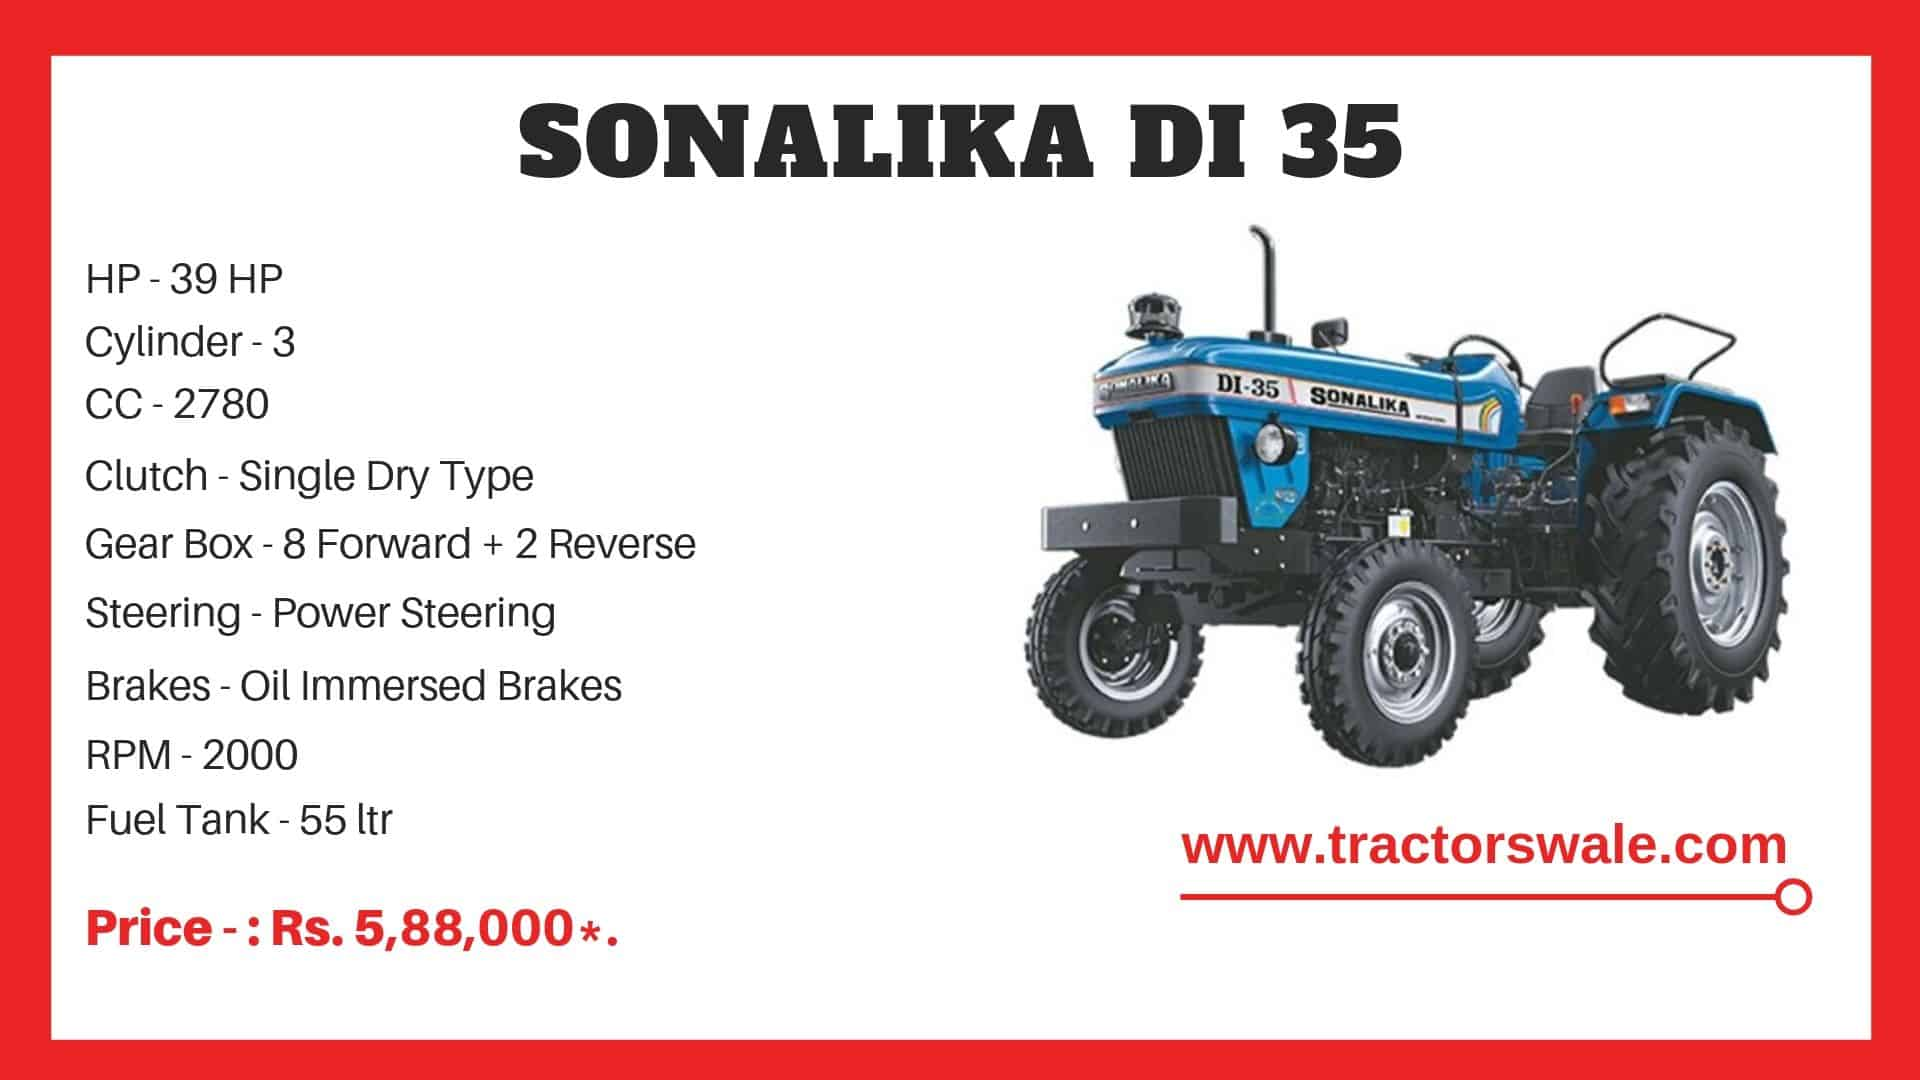 Sonalika DI 35 tractor specifications